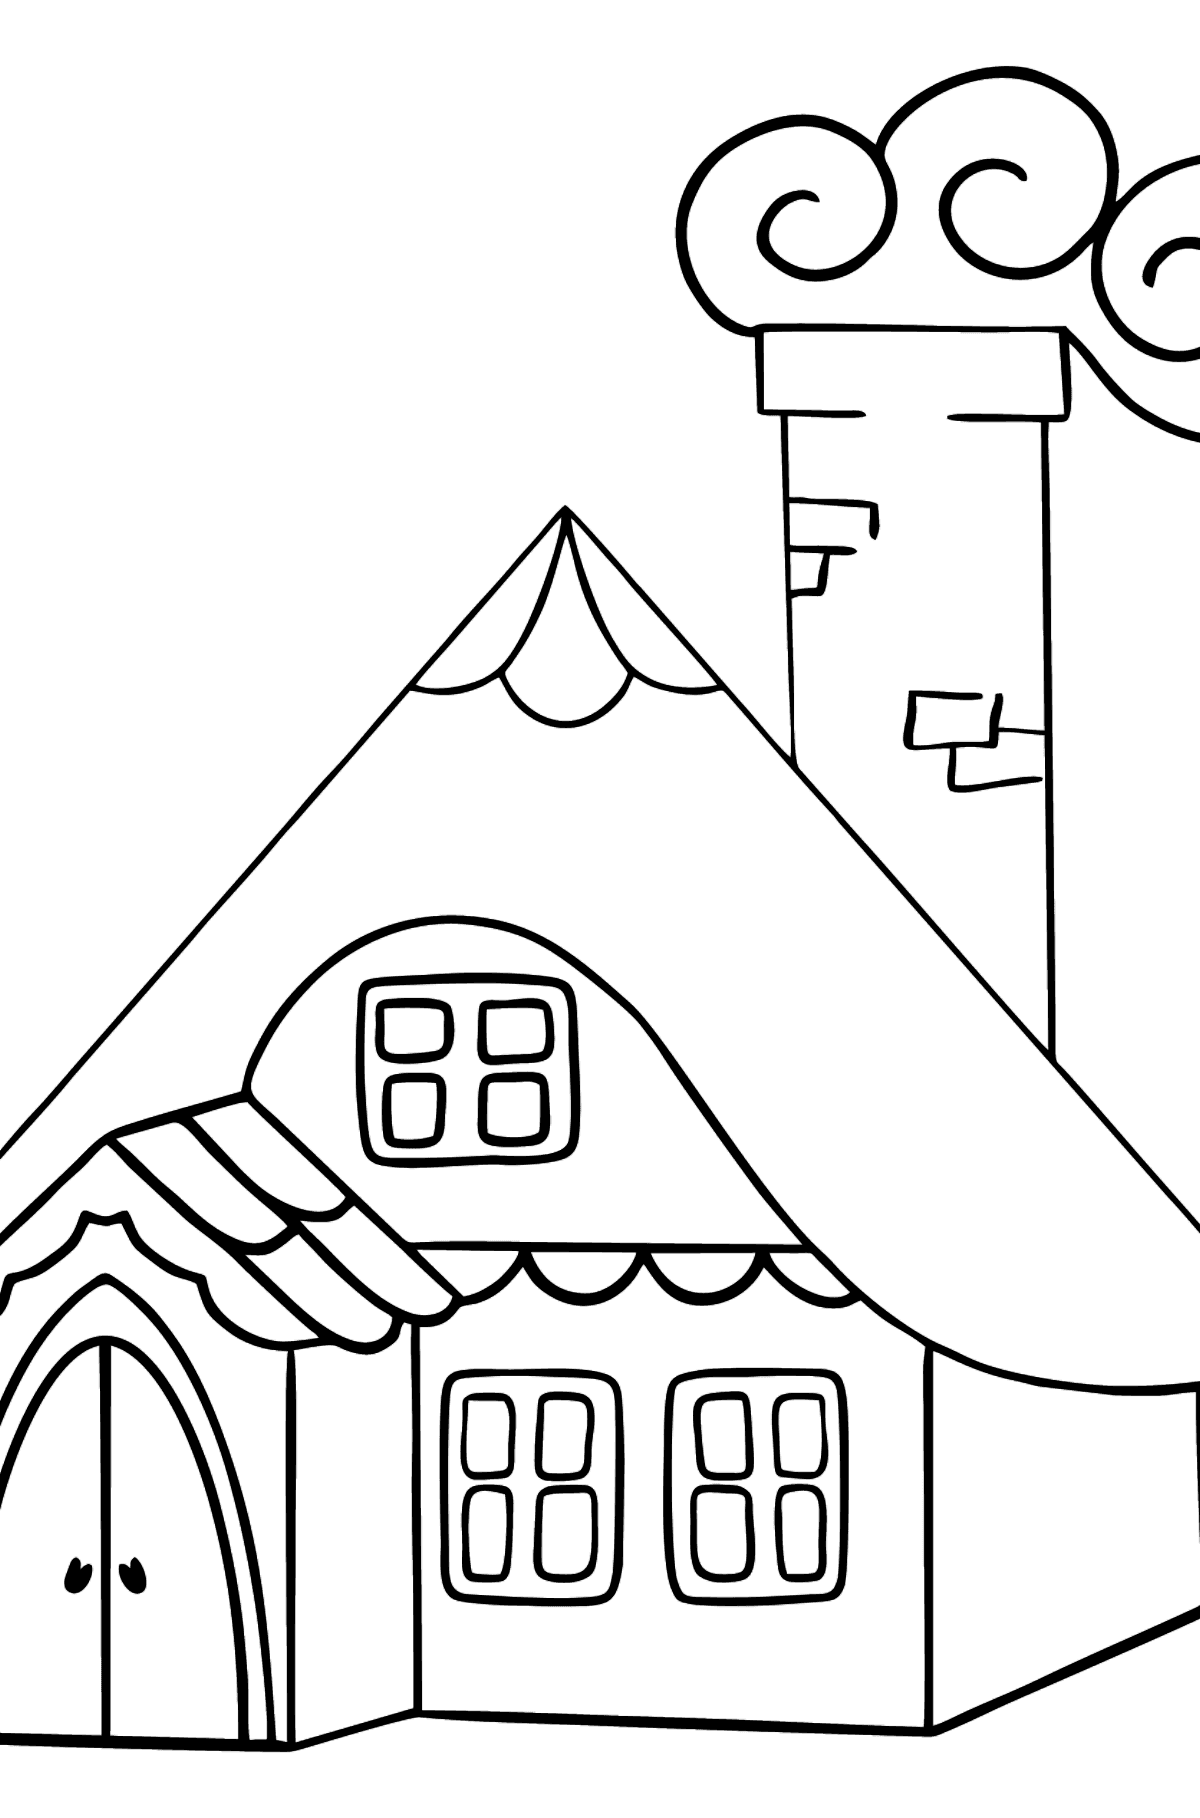 Complex Coloring Page - A Wonderful House - Coloring Pages for Kids